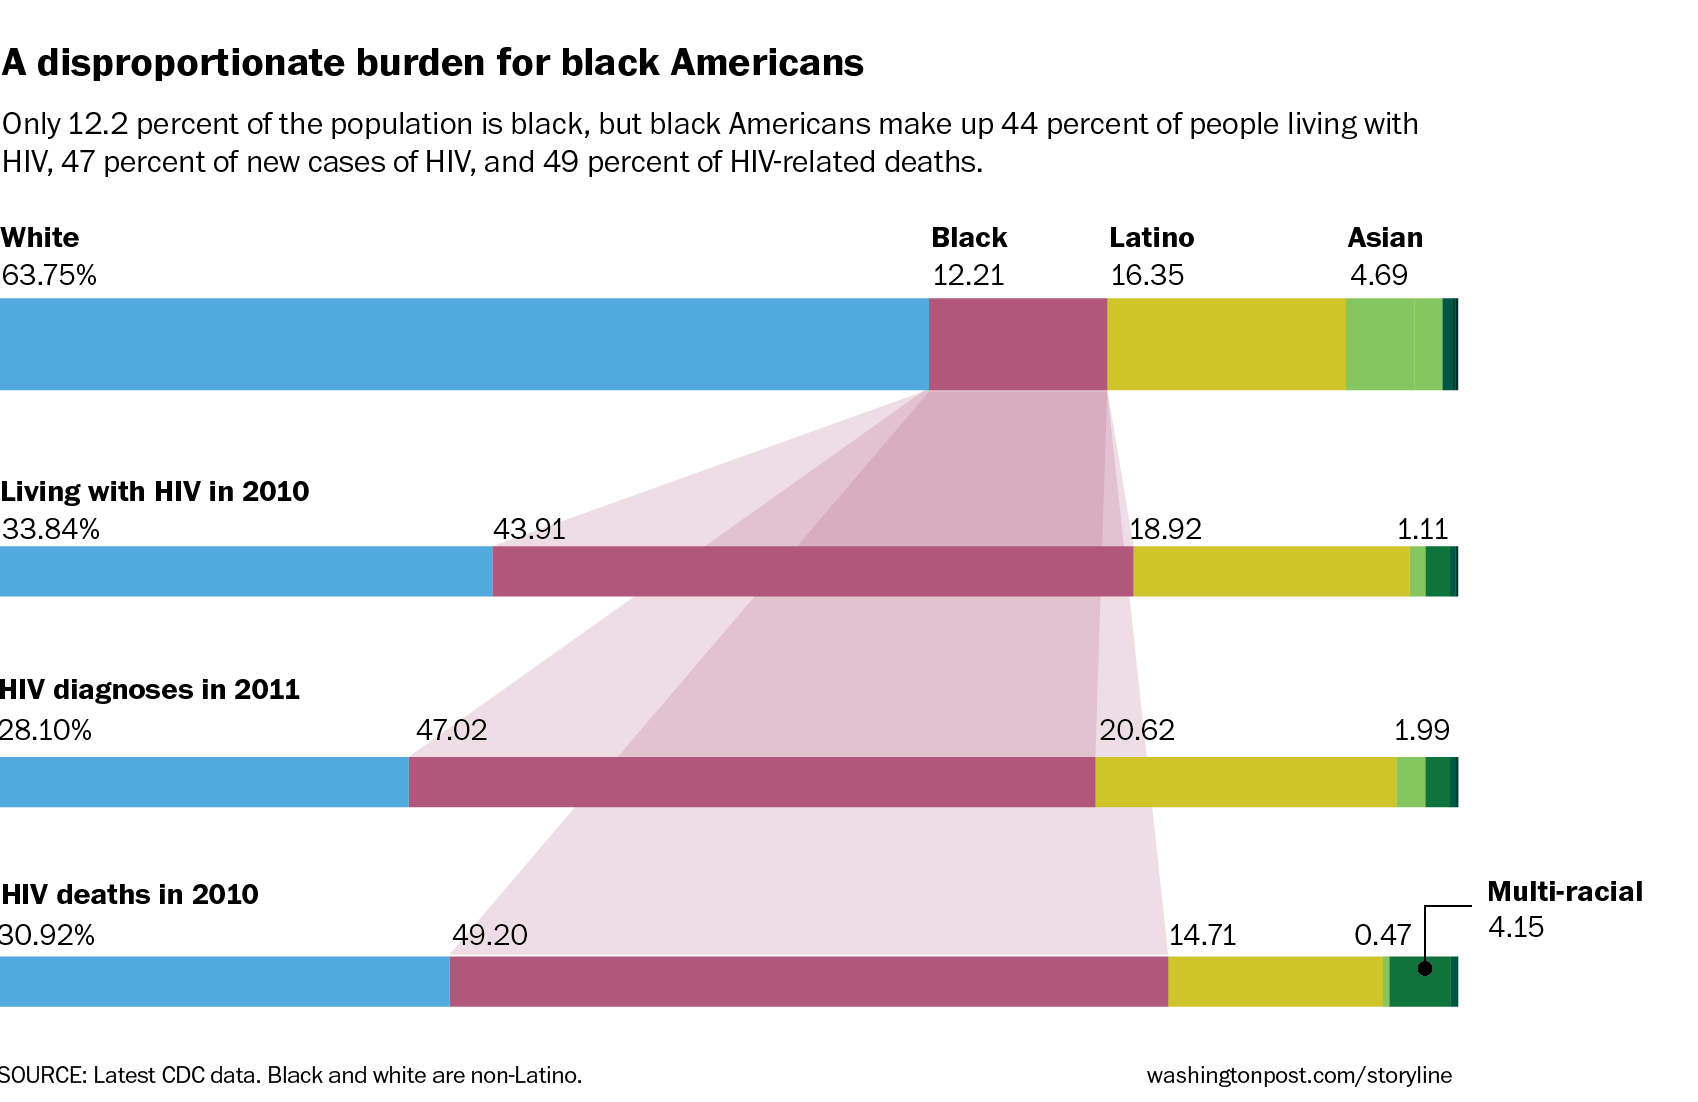 HIV disproportionately affects blacks in the U.S., by Jeff Guo of the Washington Post